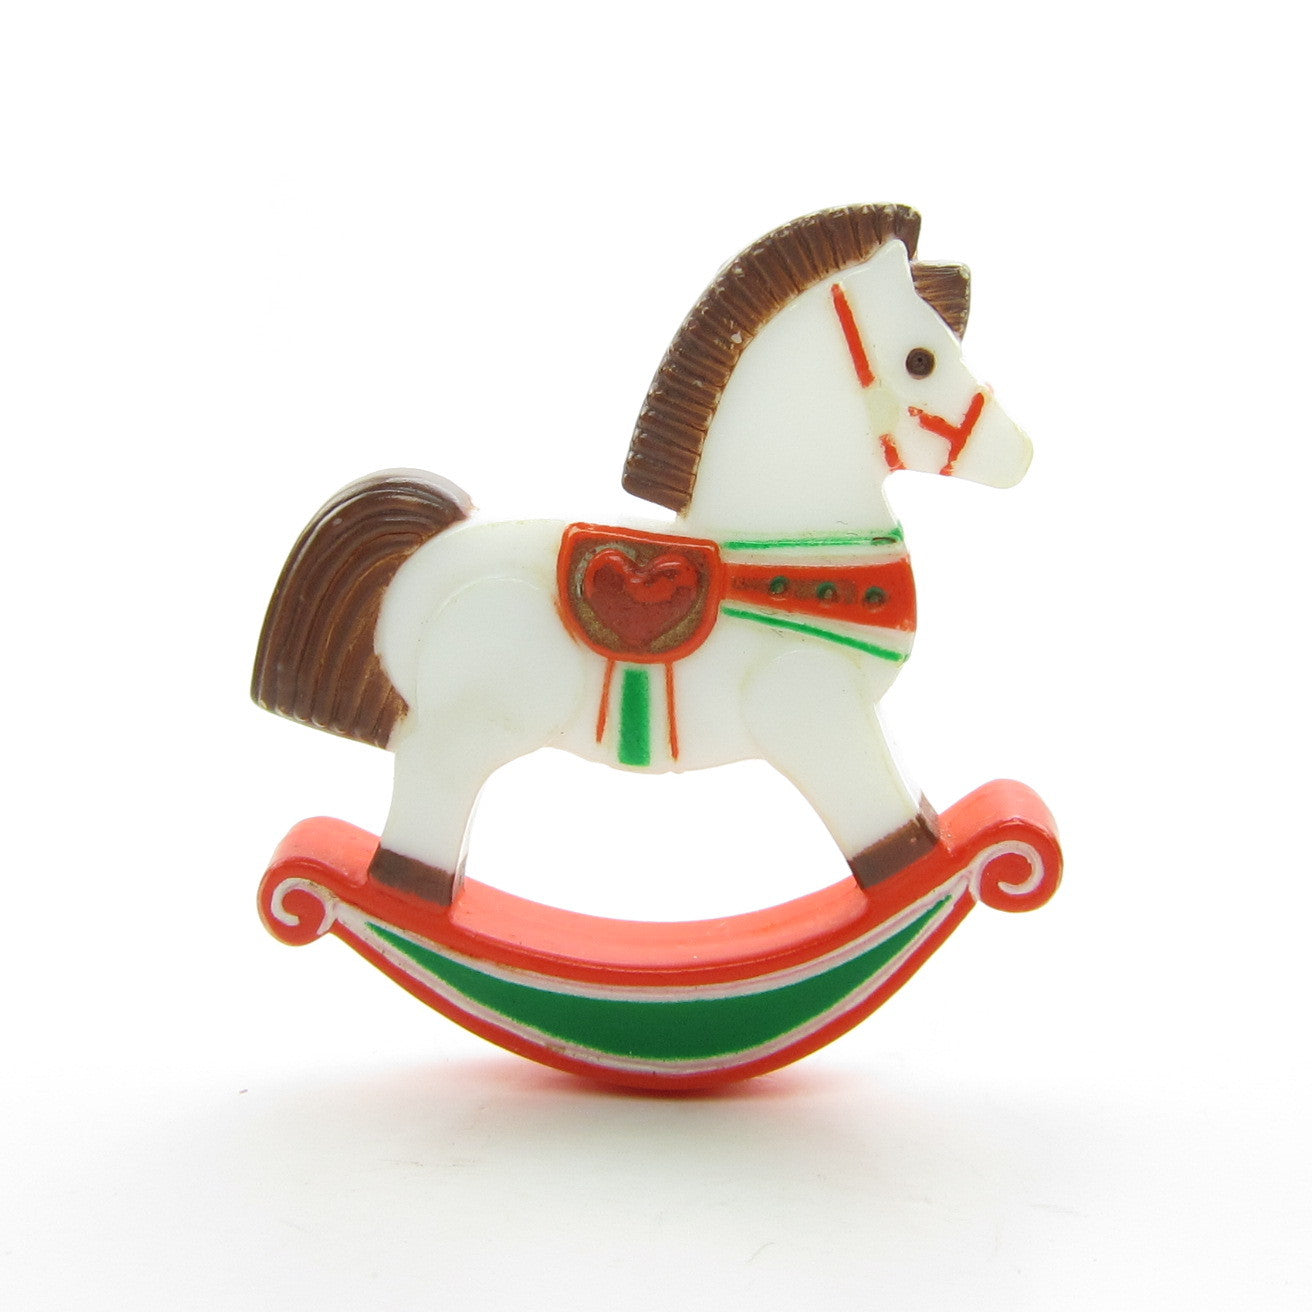 Hallmark rocking horse pin from 1982